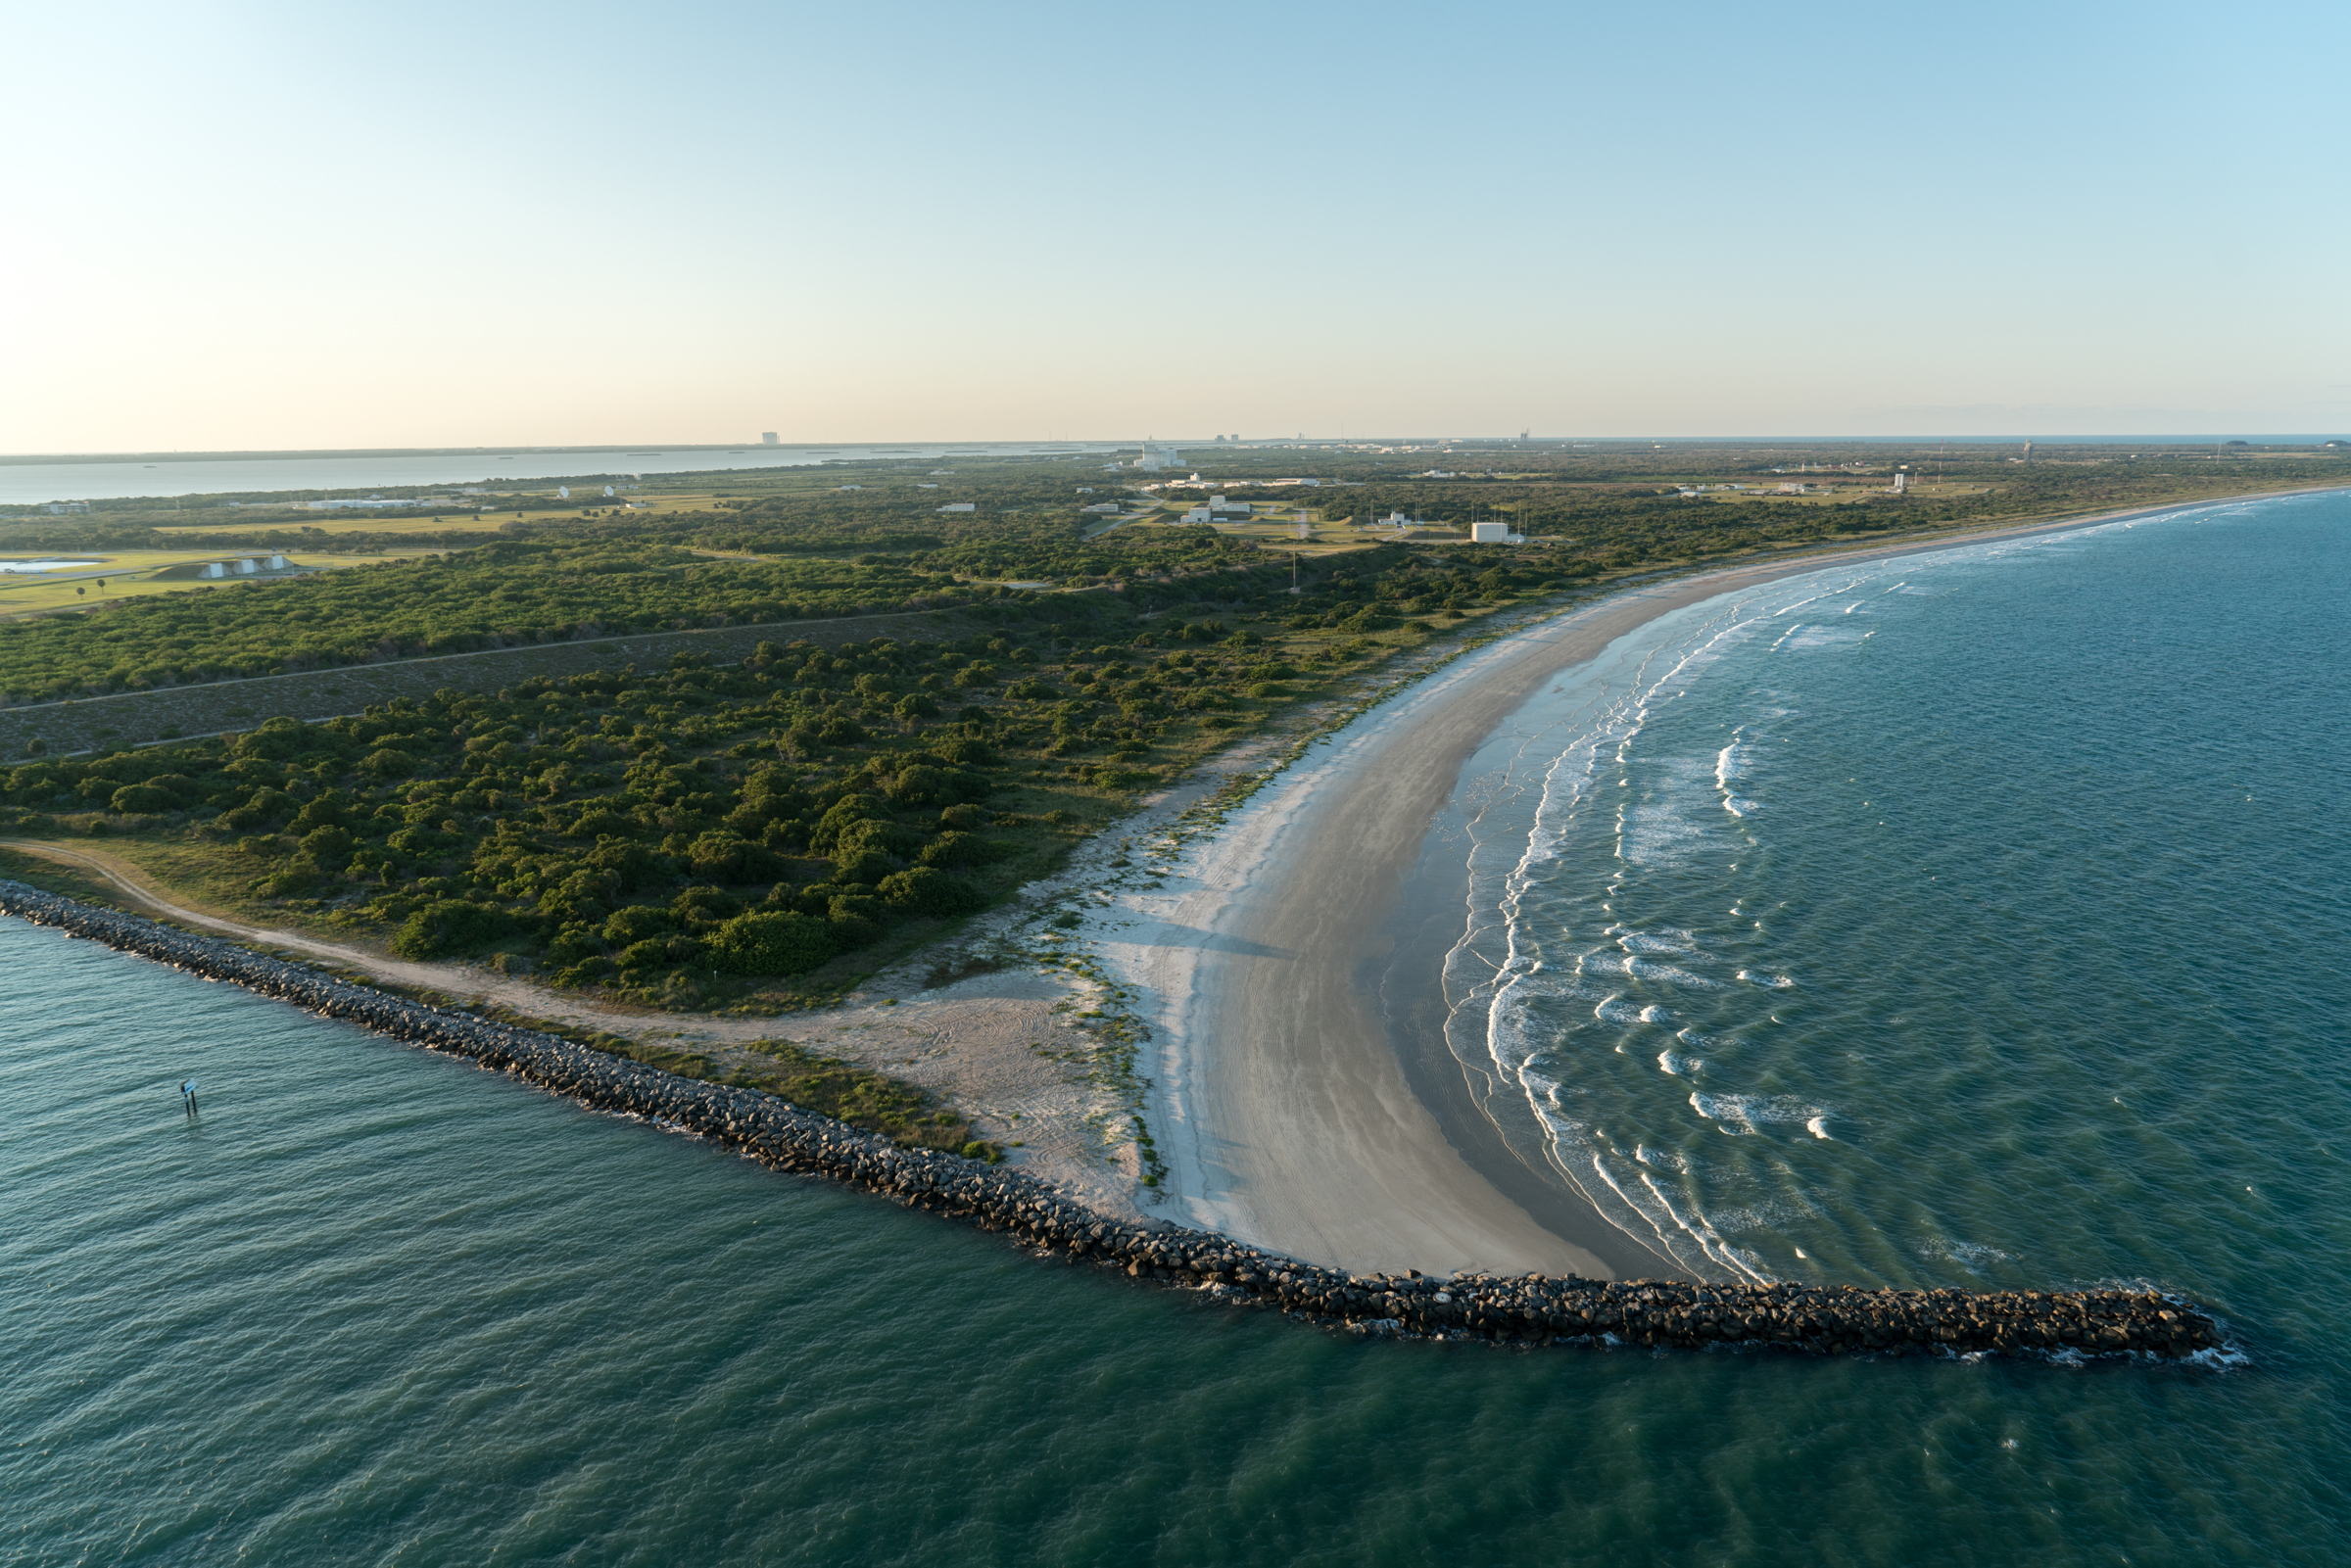 The inlet at Port Canaveral, overlooking Cape Canaveral Air Force Station.